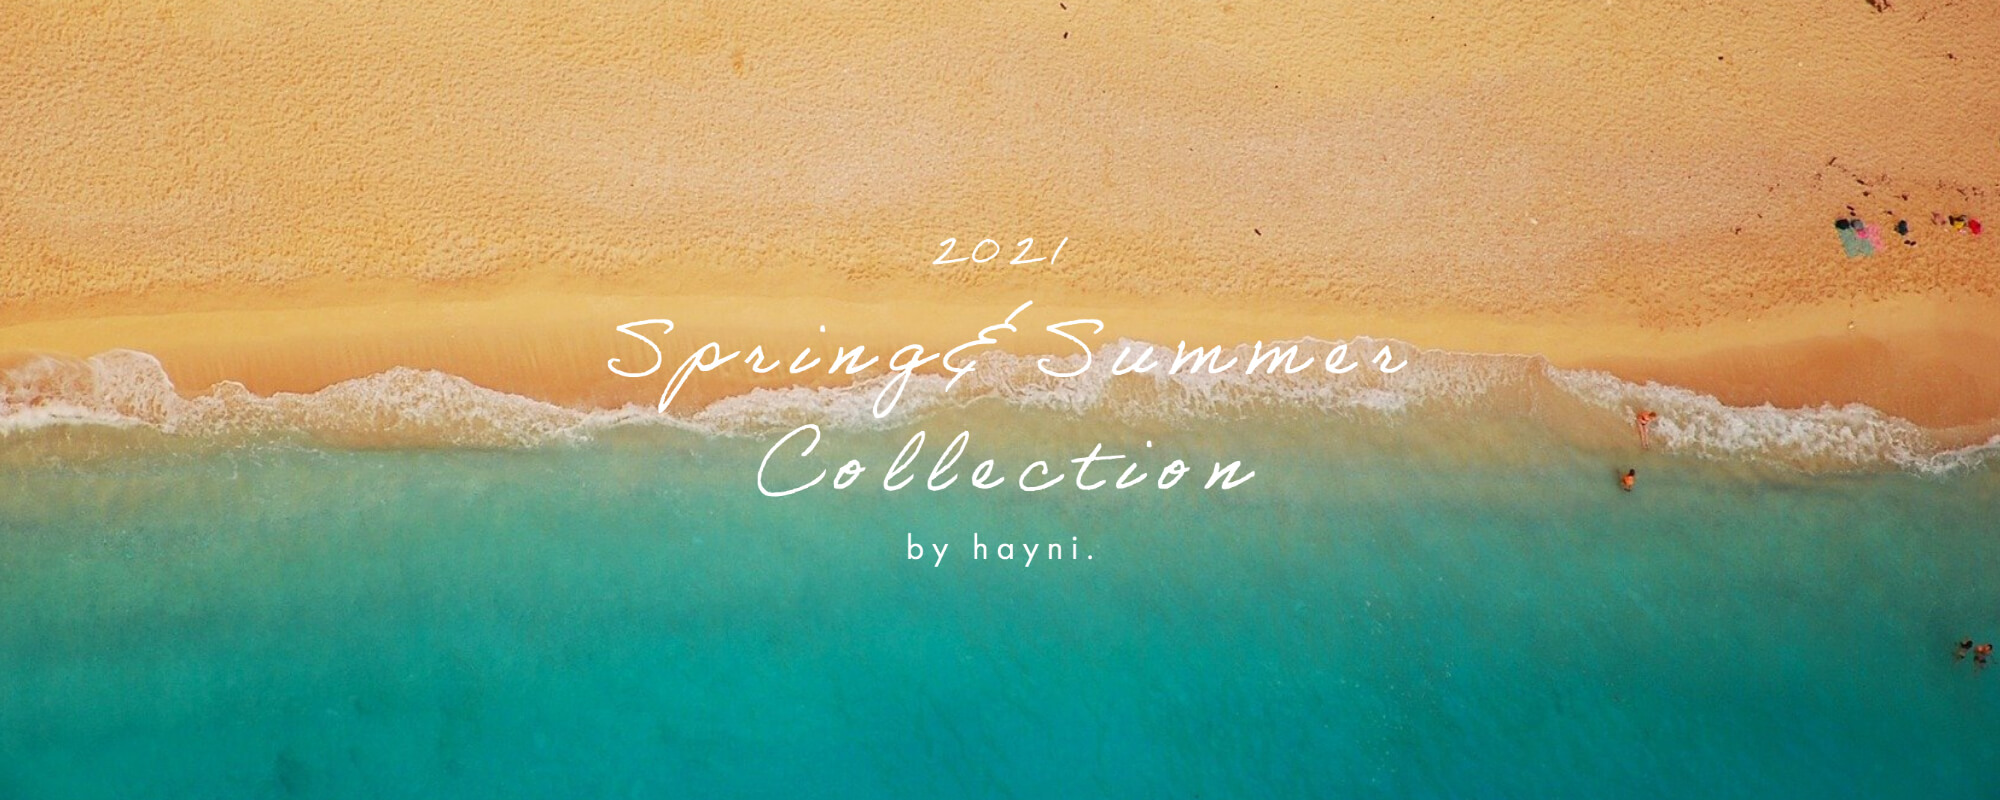 2021 SPRING&SUMMER COLLECTION by HAYNI.